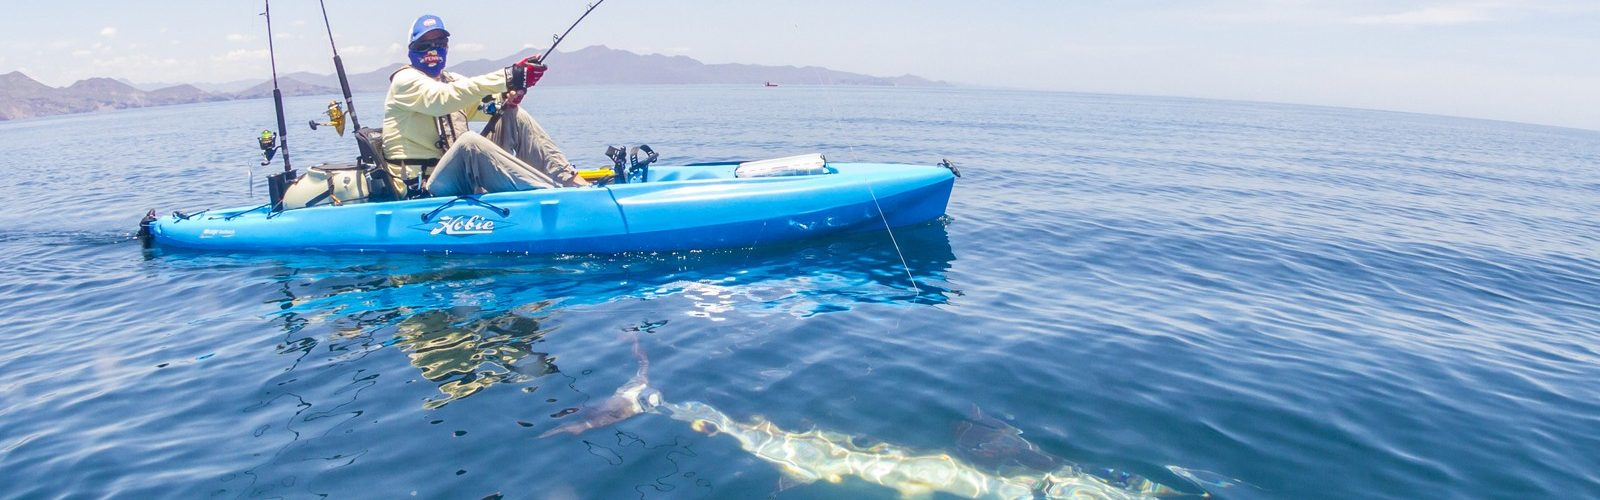 Outback_action_fishing_marlin_ocean_blue_tow_4477_full_jpg_1600x1600__generated